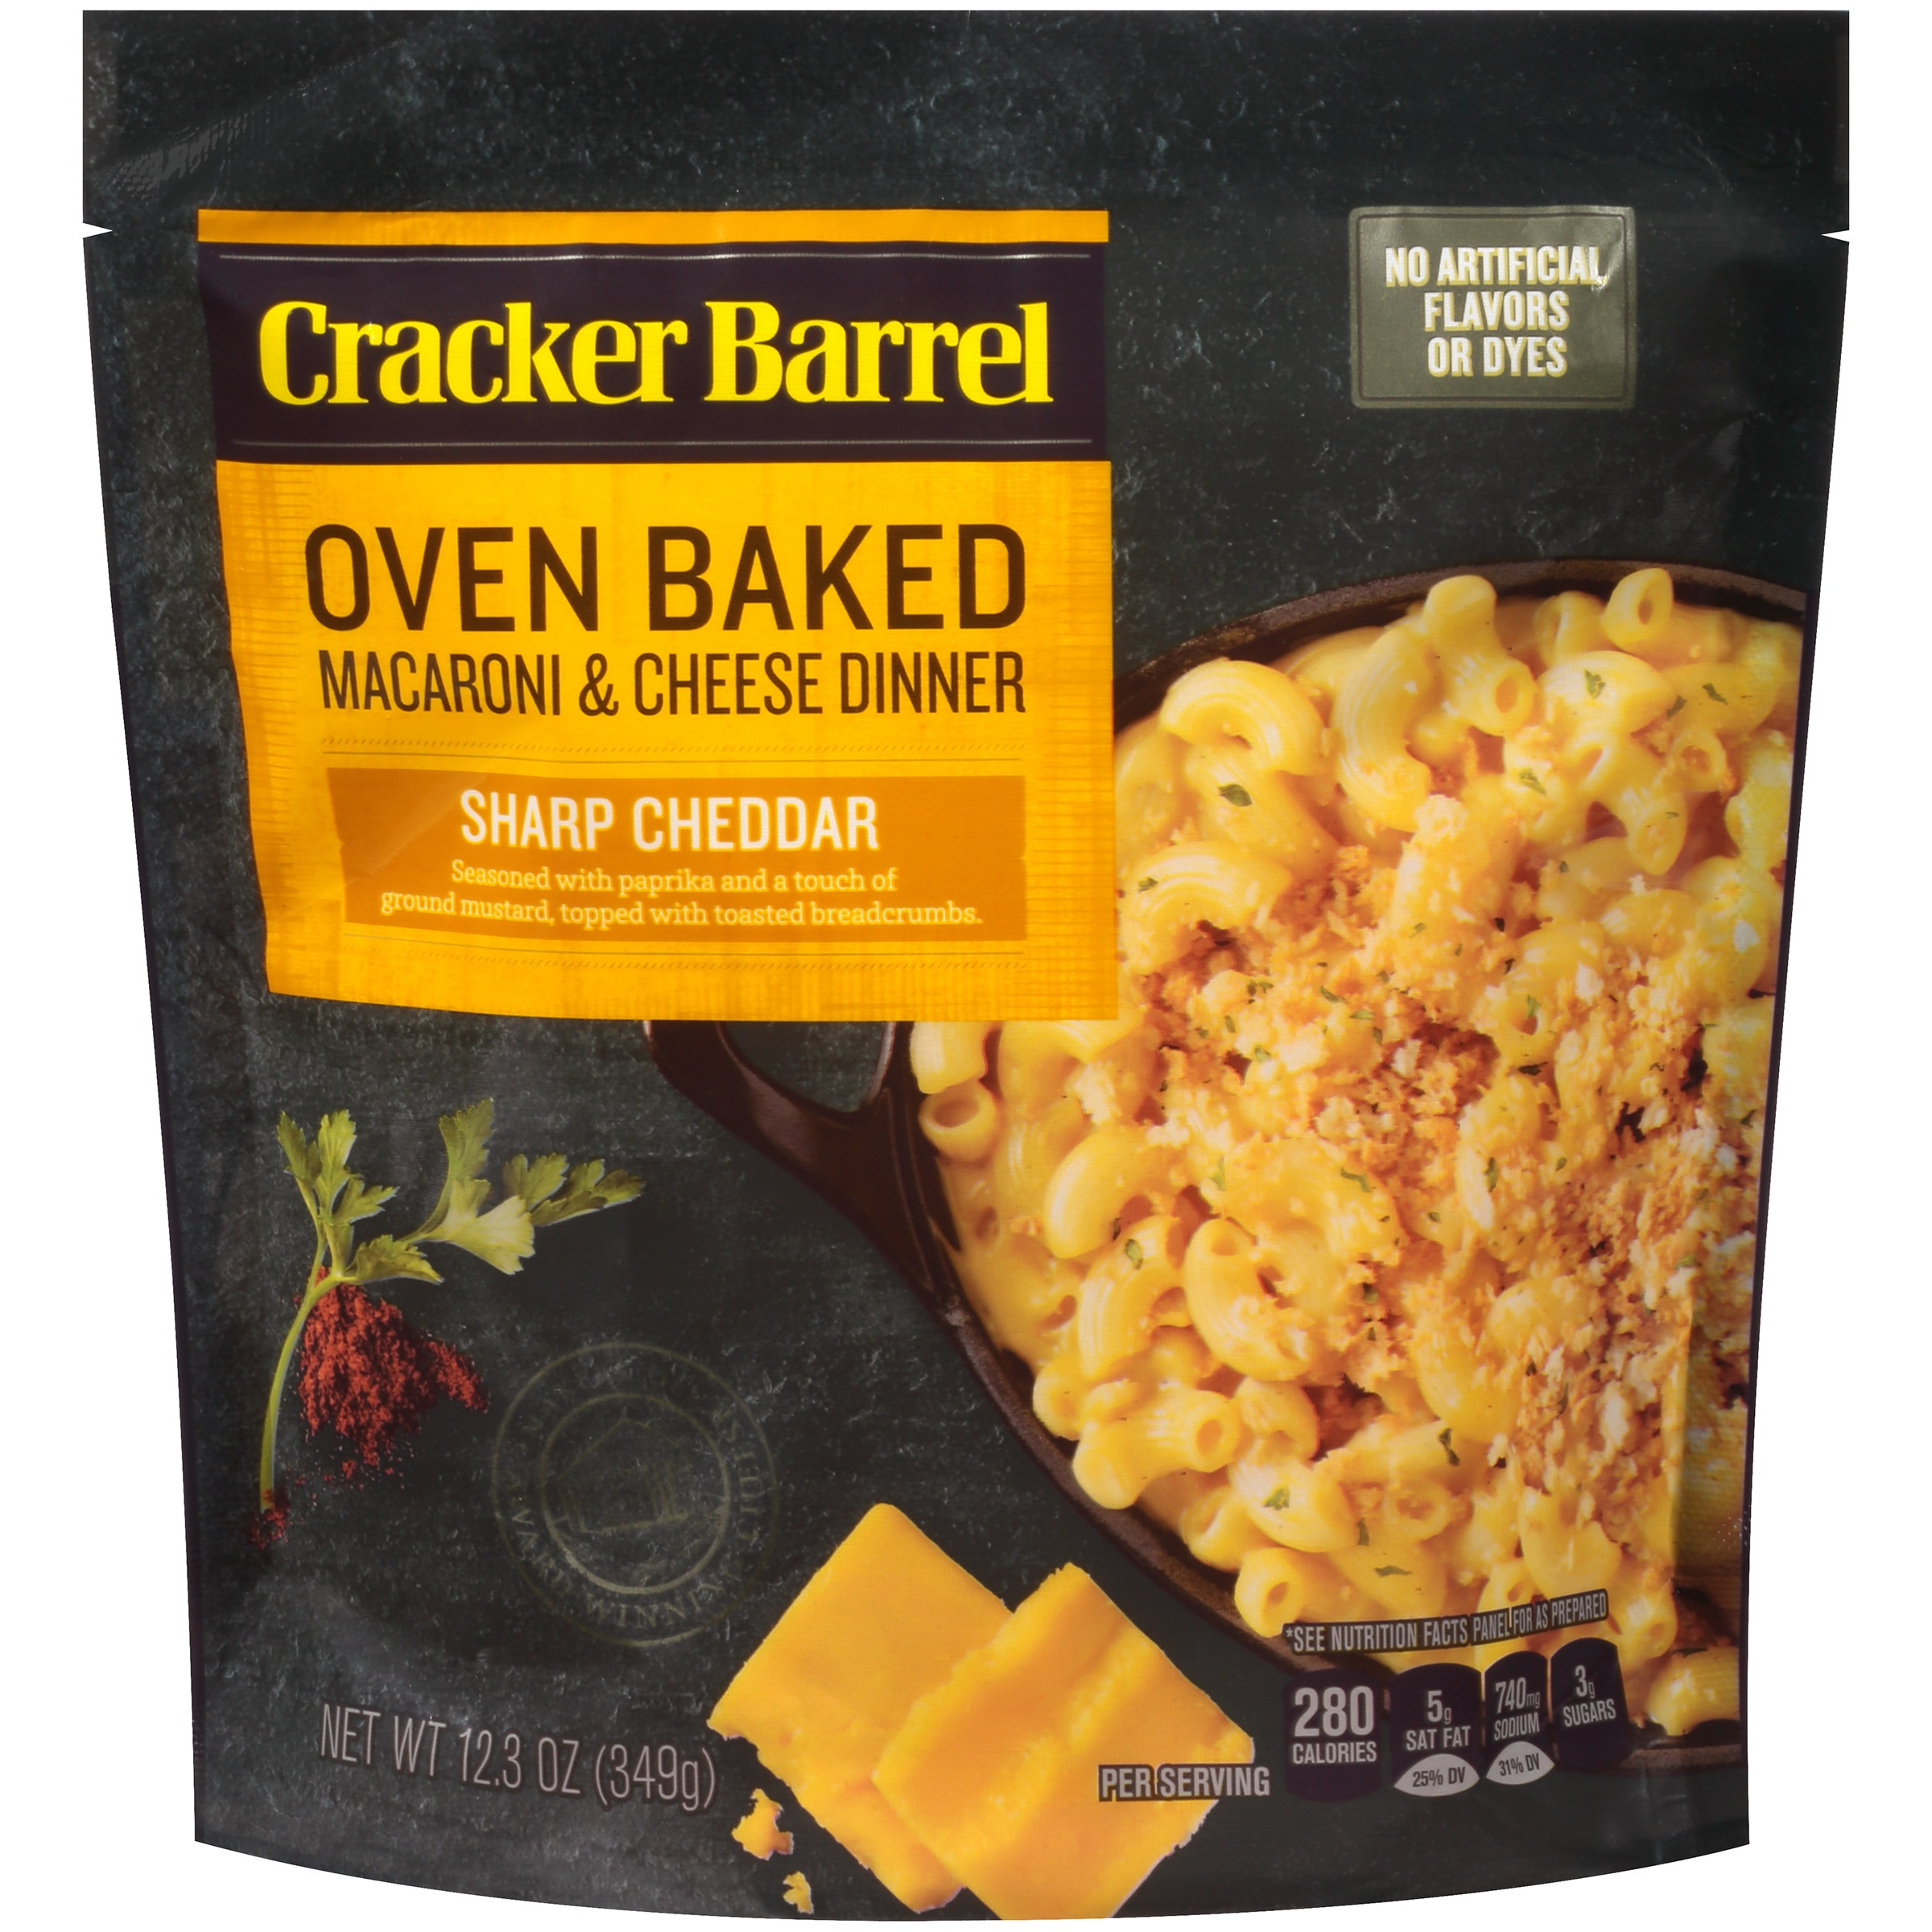 Cracker Barrel Oven Baked Sharp Cheddar Macaroni & Cheese Dinner 12.3 oz. Pouch